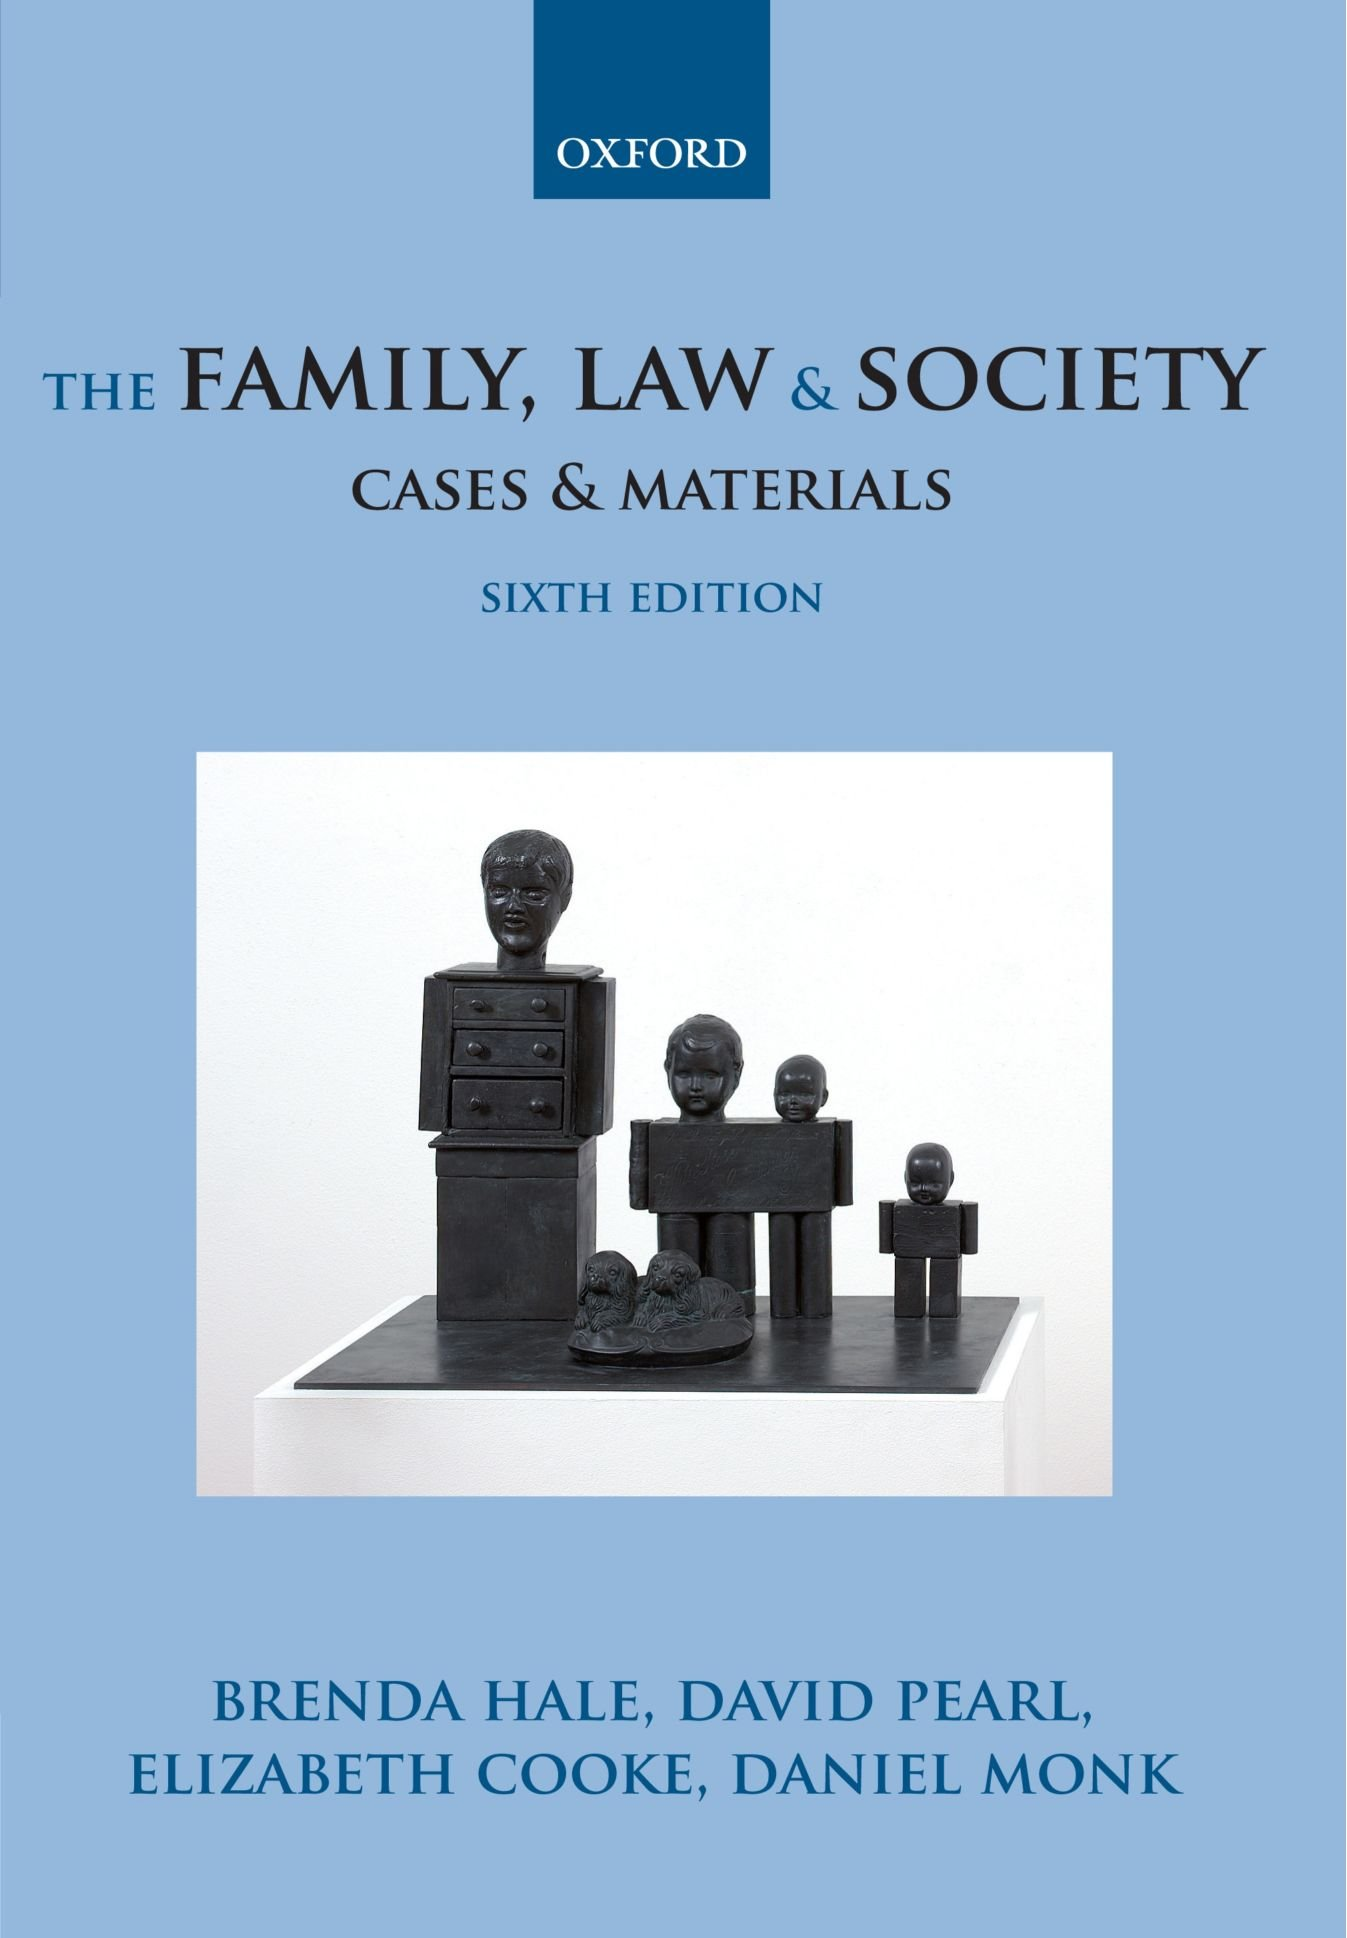 The Family, Law & Society: Cases & Materials